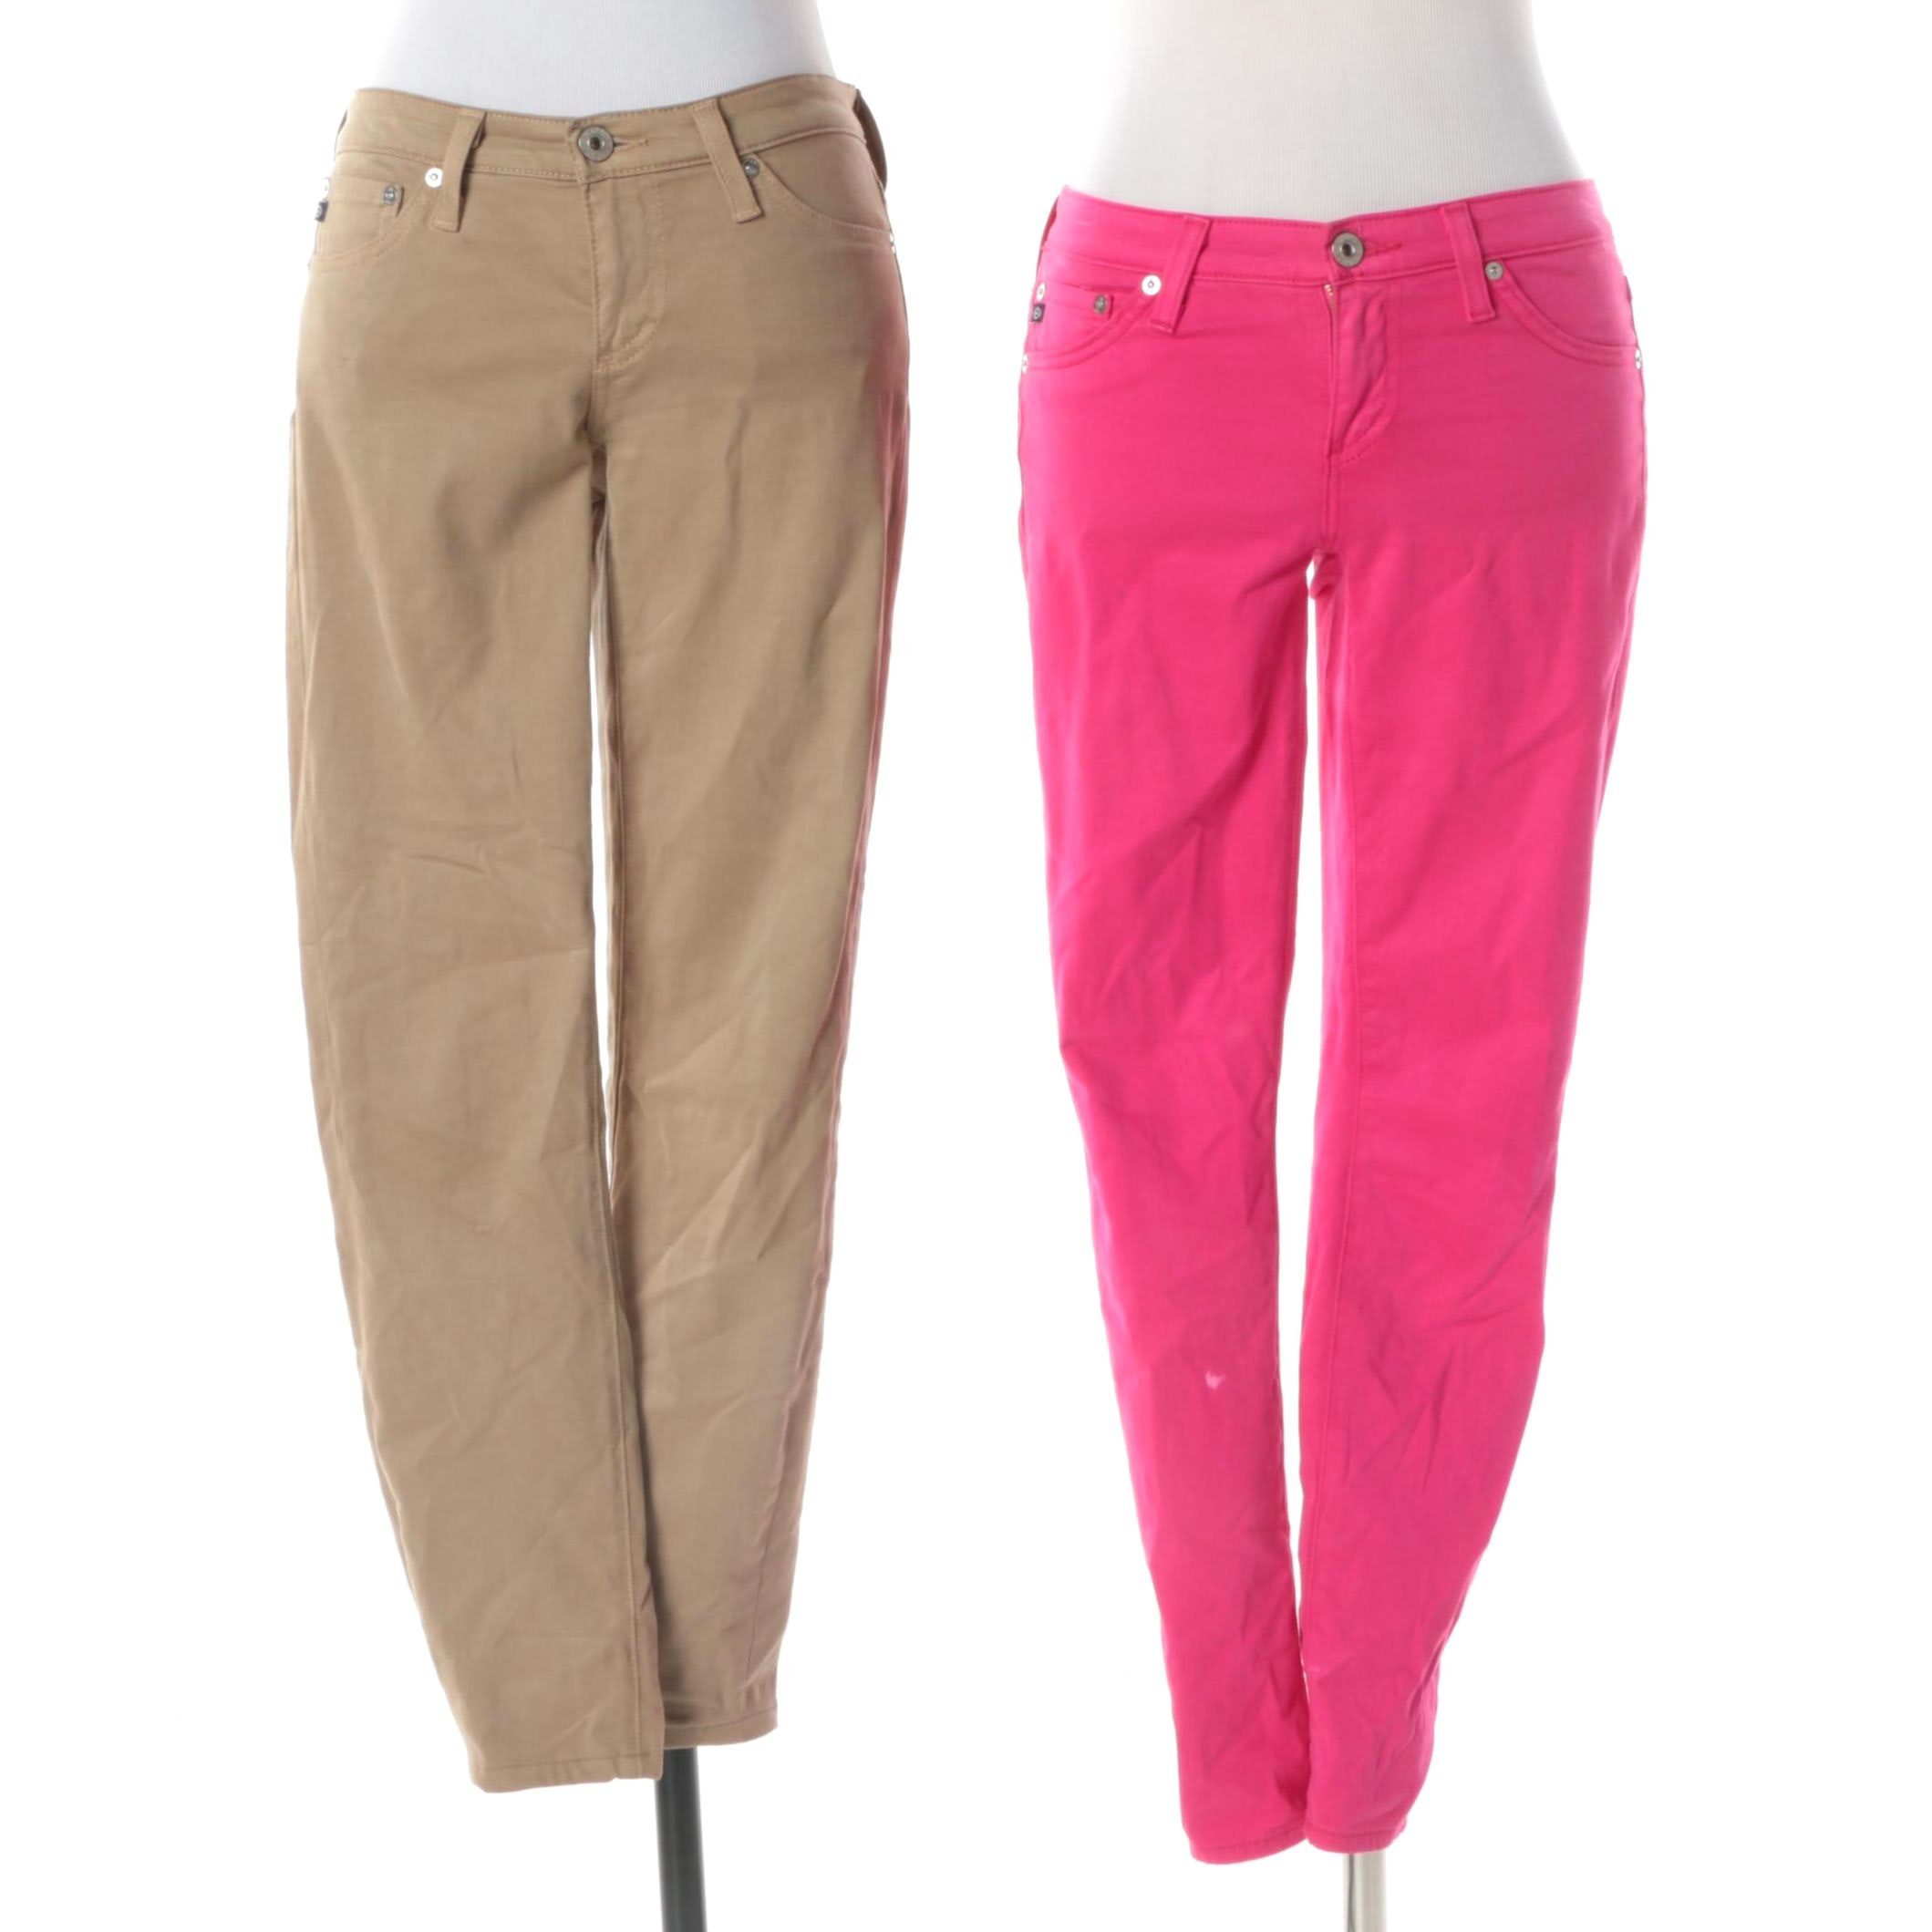 Women's Adriano Goldschmied Super Skinny Ankle and Cigarette Leg Pants